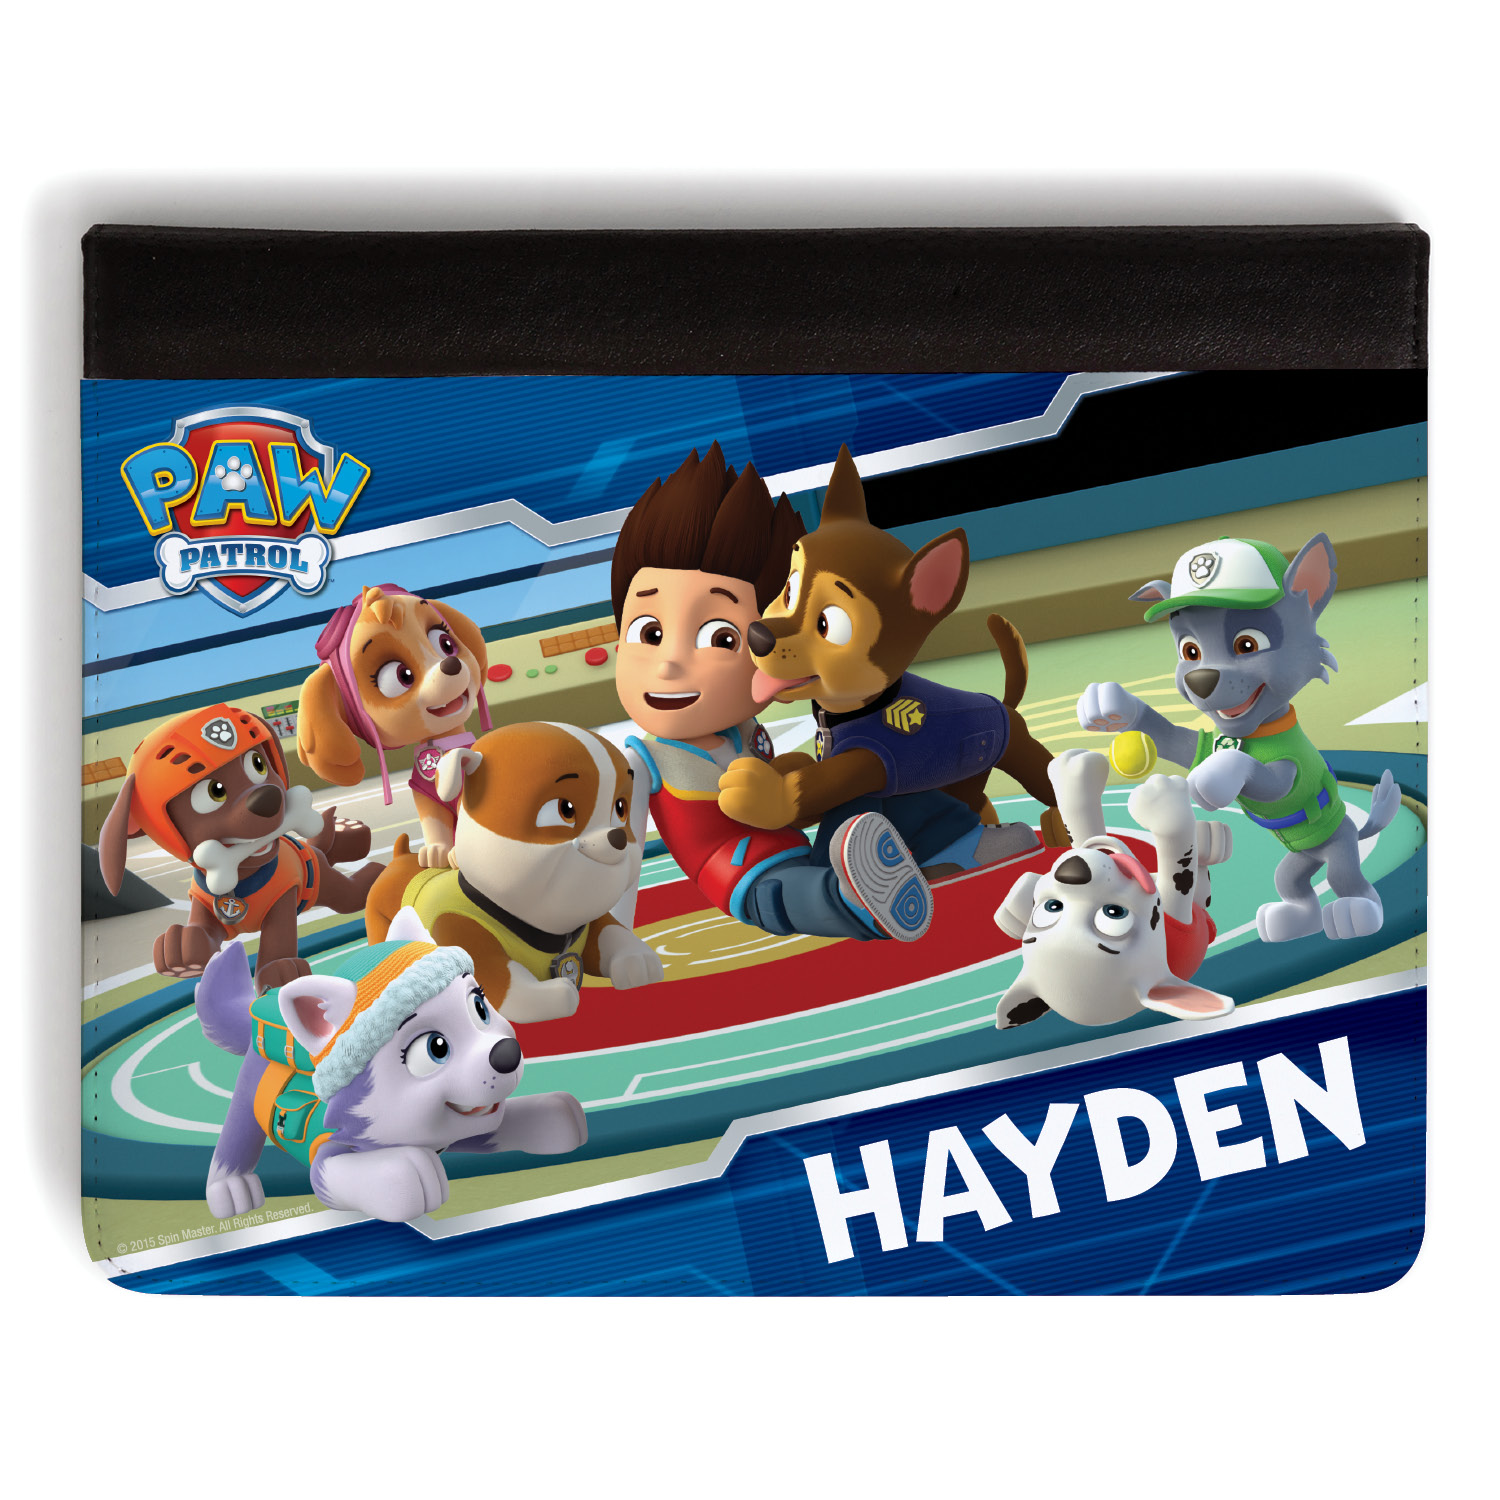 Paw Patrol Kids Toy Organizer Bin Children S Storage Box: Paw Patrol All Paws On Deck IPad Case